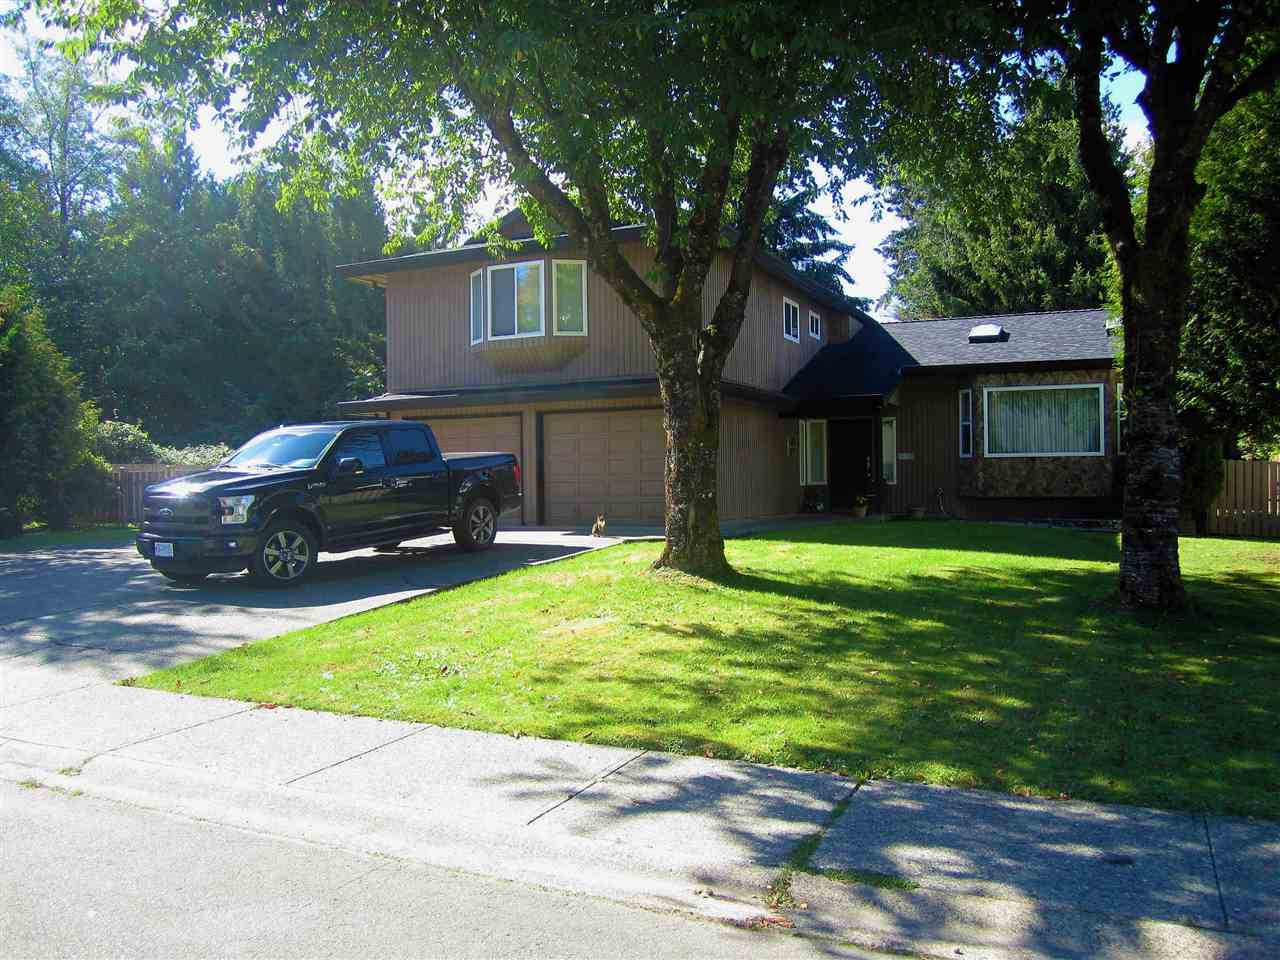 Main Photo: 9417 204A Street in Langley: Walnut Grove House for sale : MLS®# R2110673